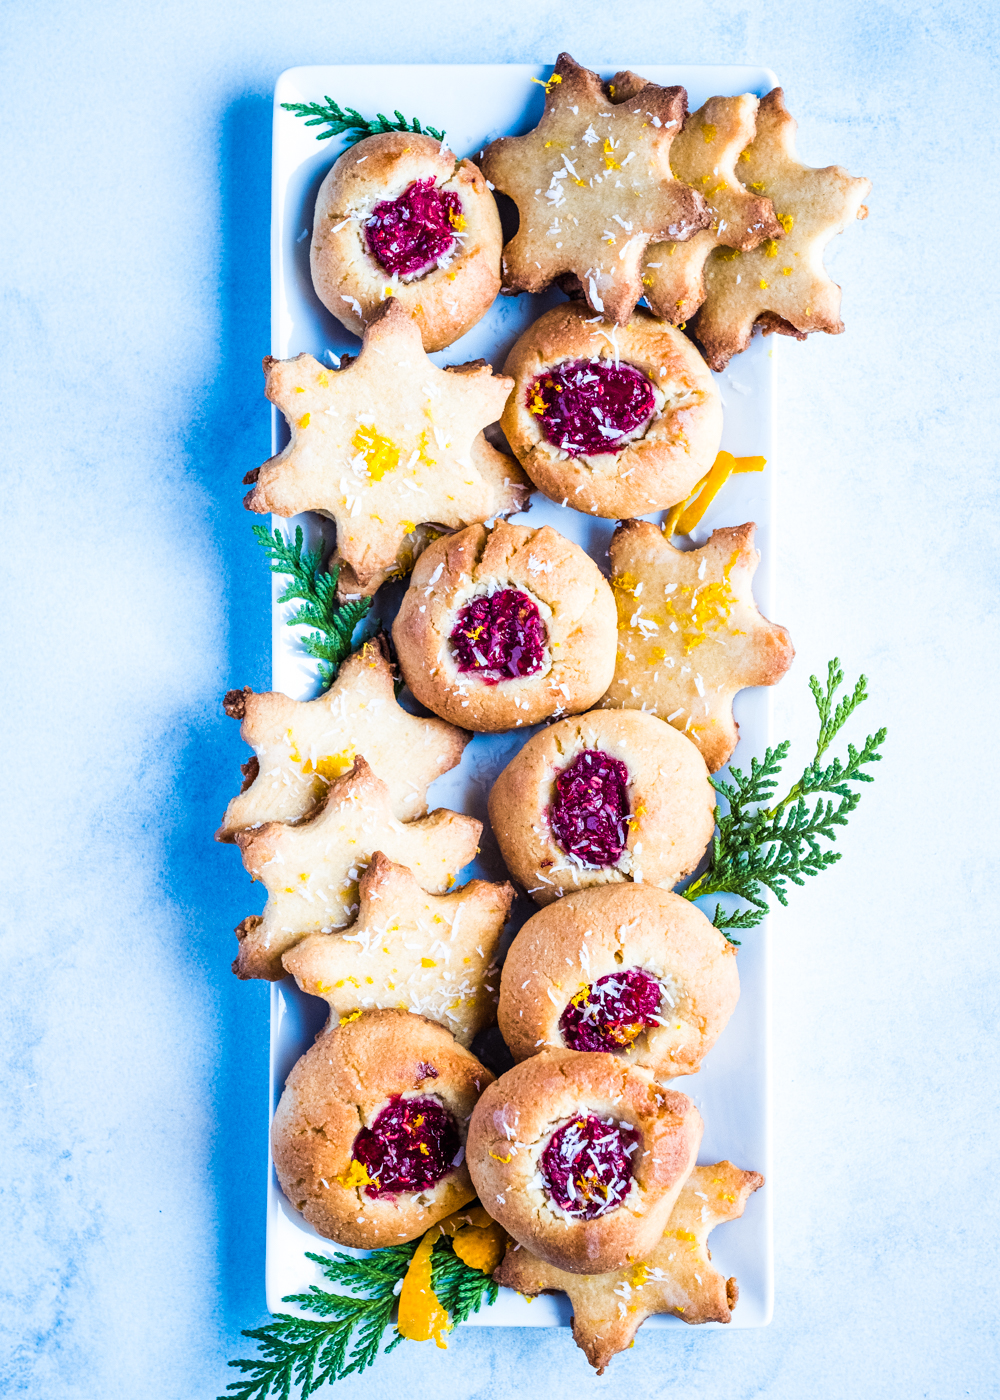 Lectin Free Christmas Cookies With Orange And Raspberries Two Ways